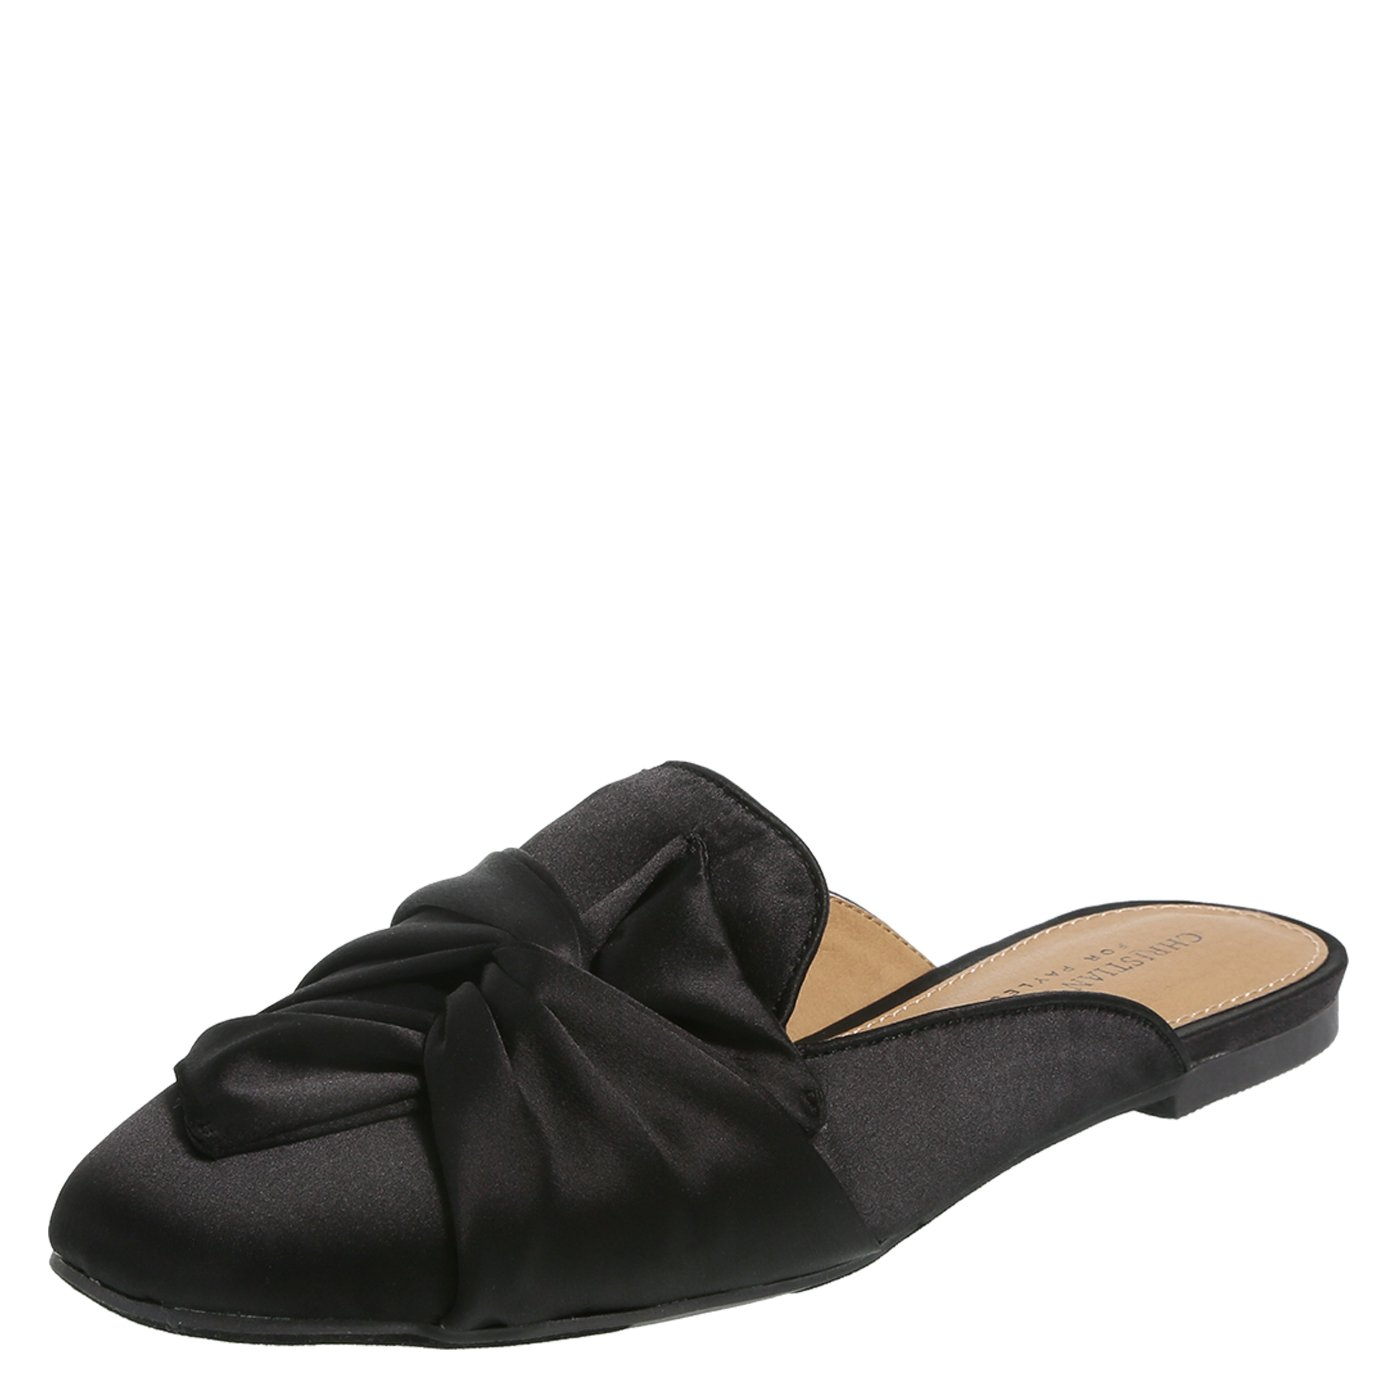 Christian Siriano for Payless Black Women's Ada Twist Mule 6 Regular